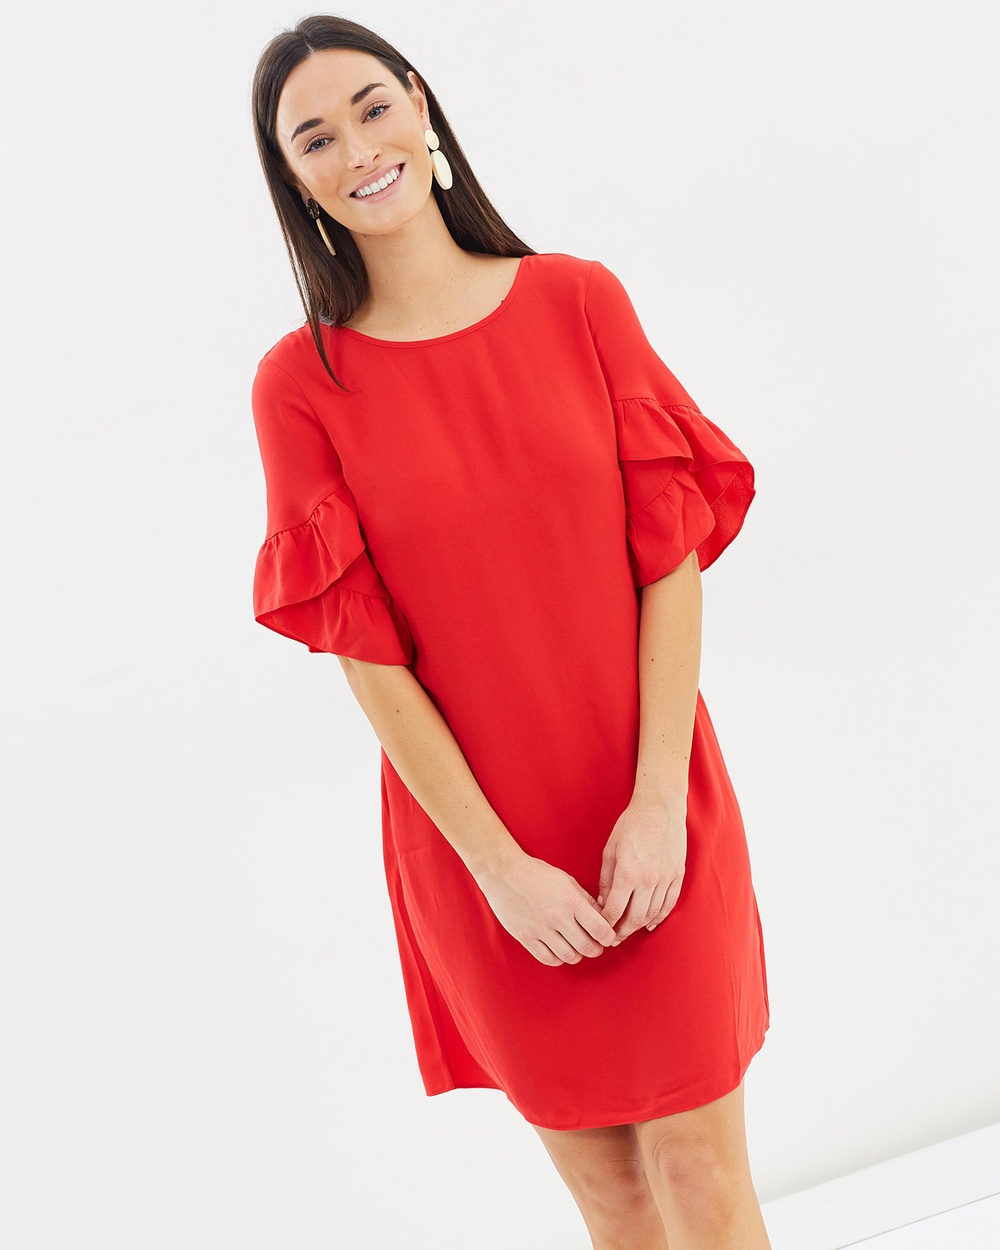 Dorothy Perkins Lace Up Block Shift Dress Dresses Red Lace-Up Block Shift Dress